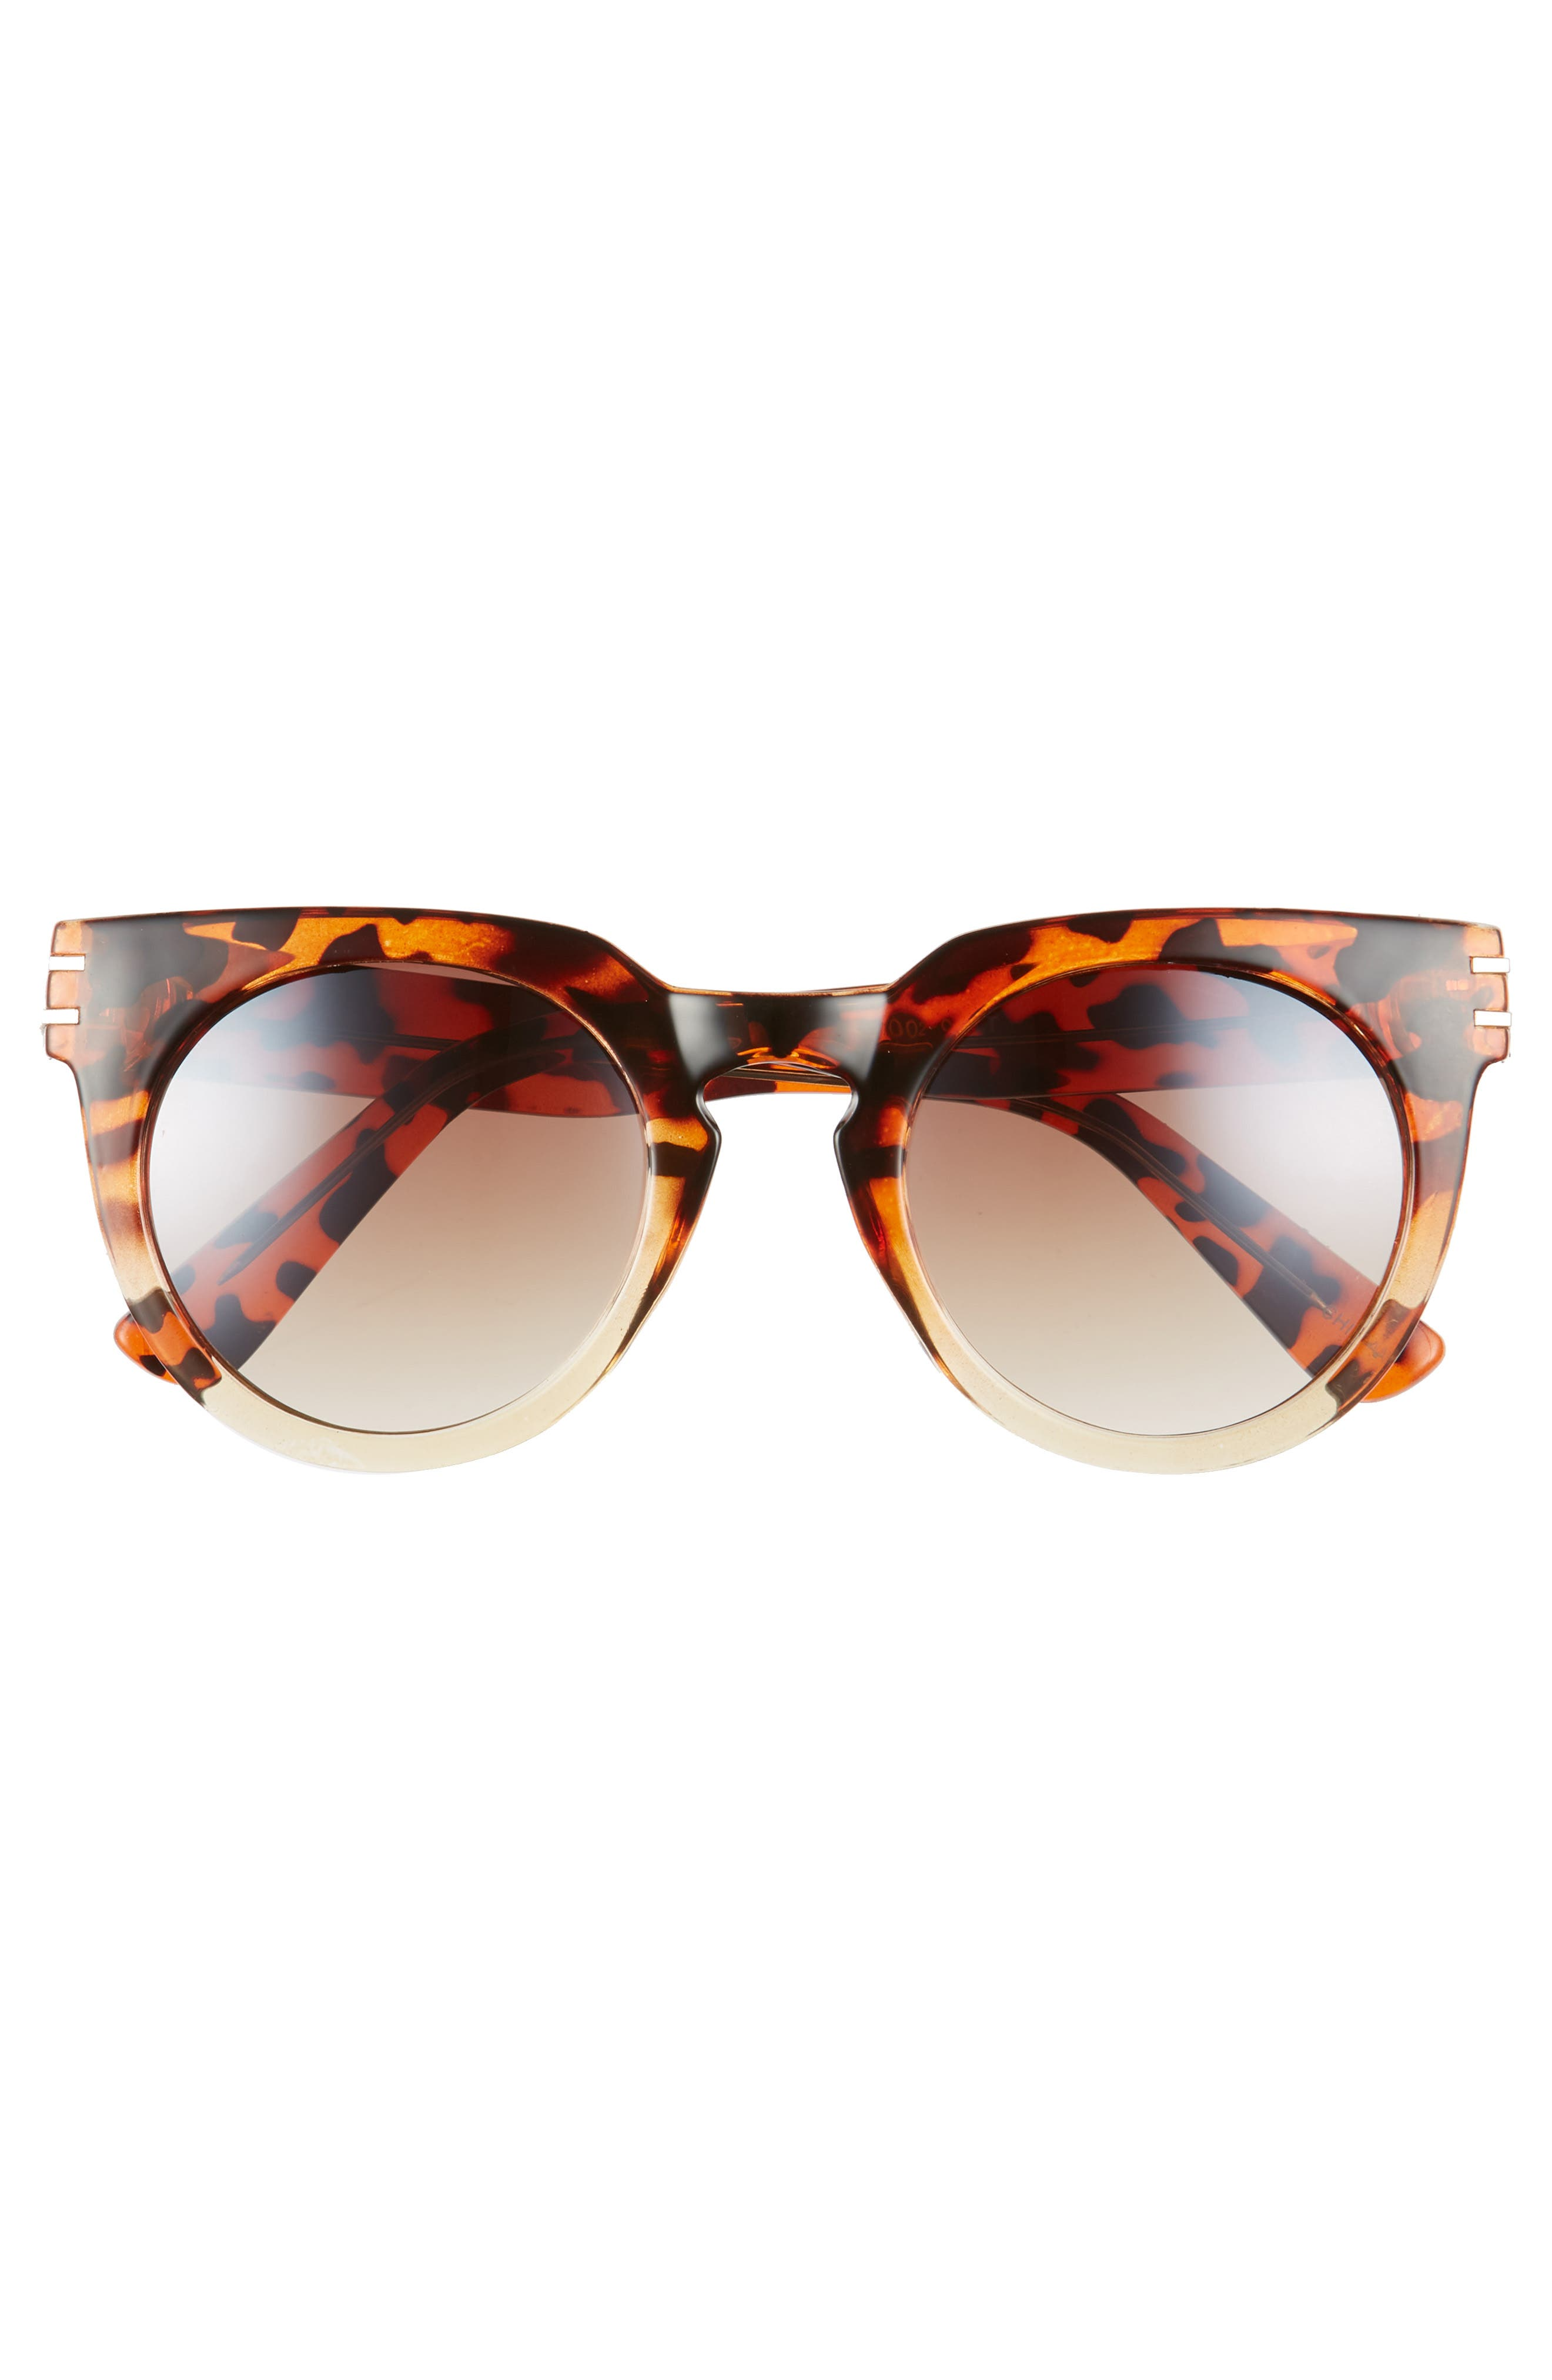 50mm Round Sunglasses,                             Alternate thumbnail 3, color,                             Leopard/ Brown